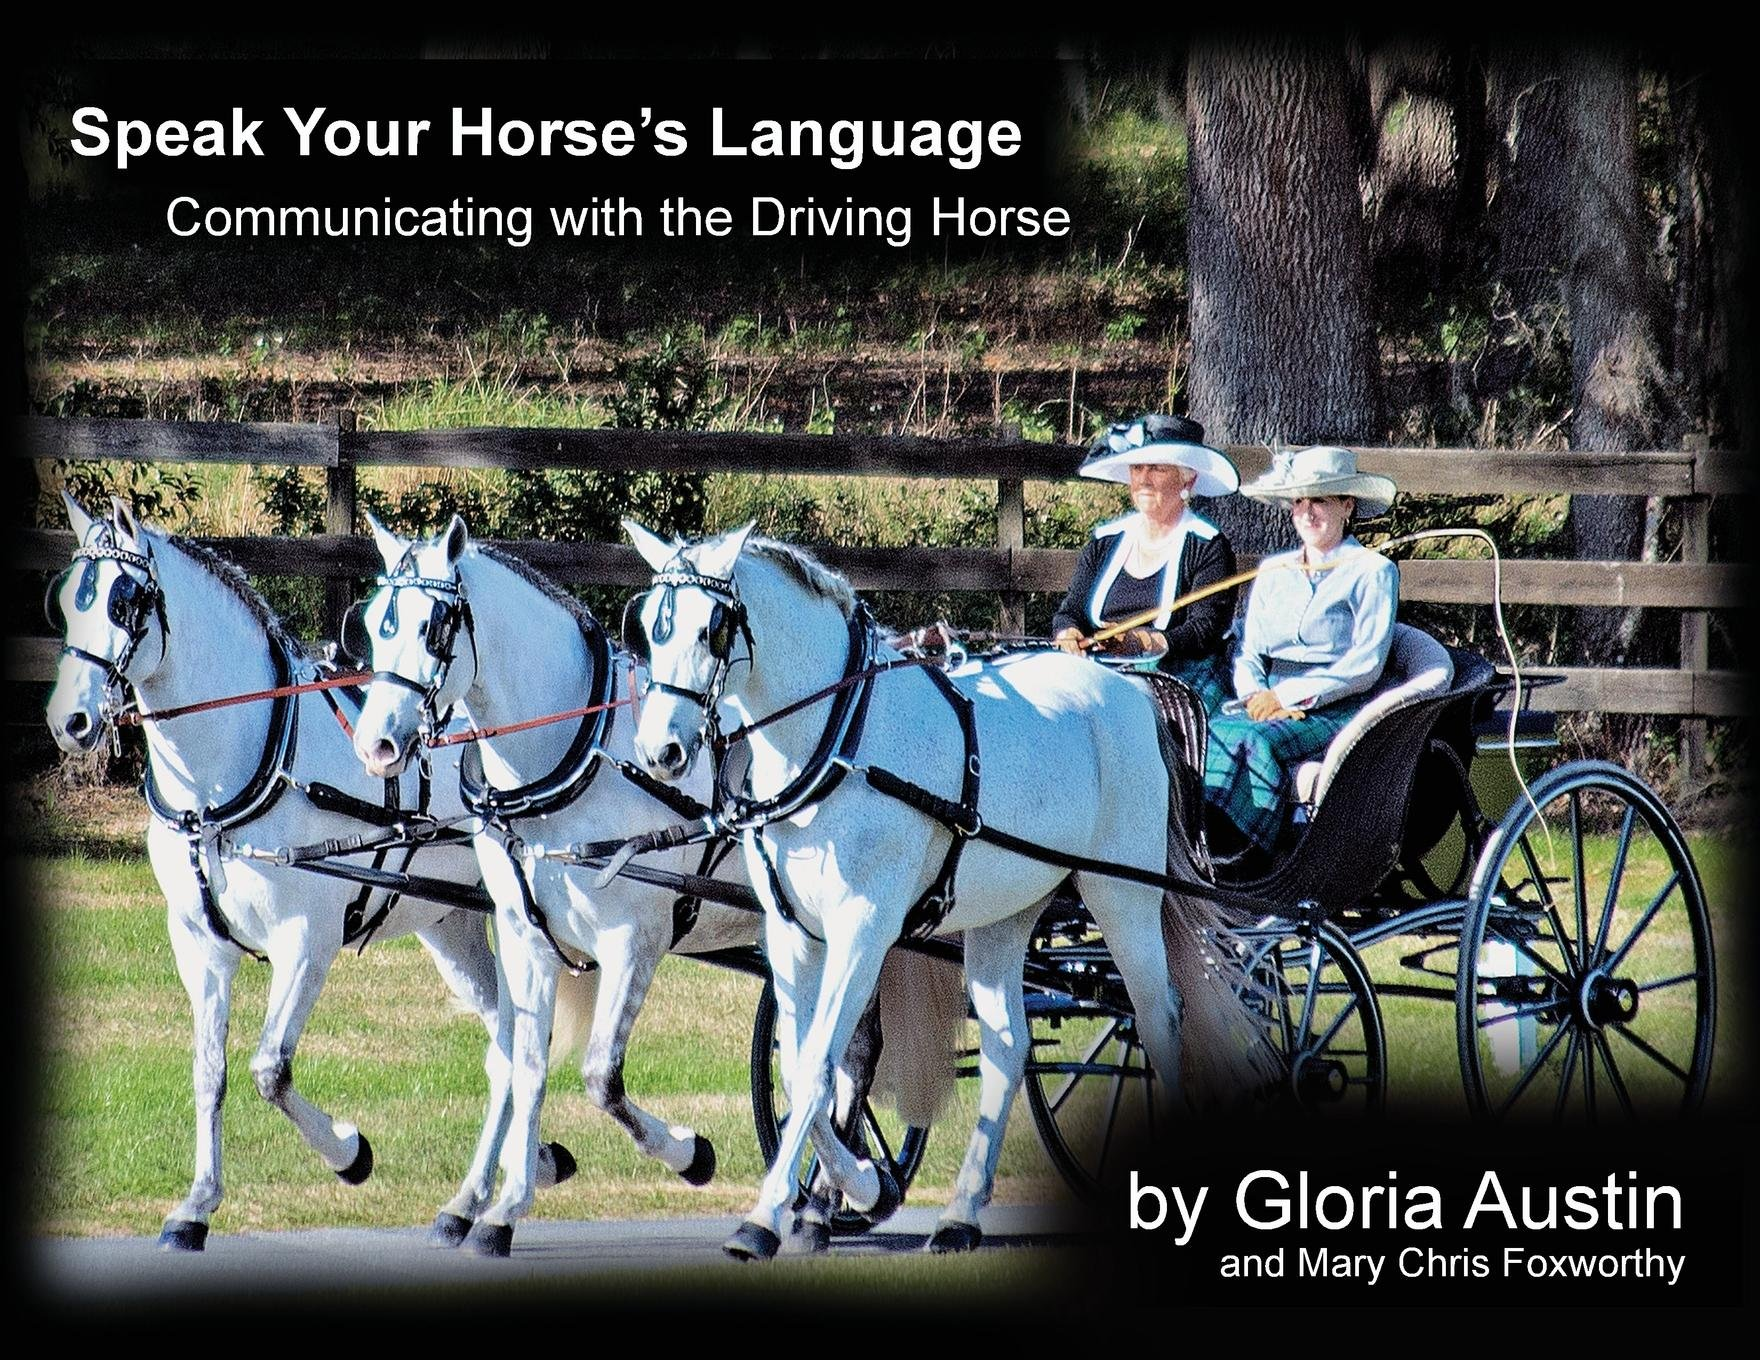 Speak Your Horse's Language: Communicating with the Driving Horse by Equine Heritage Institute